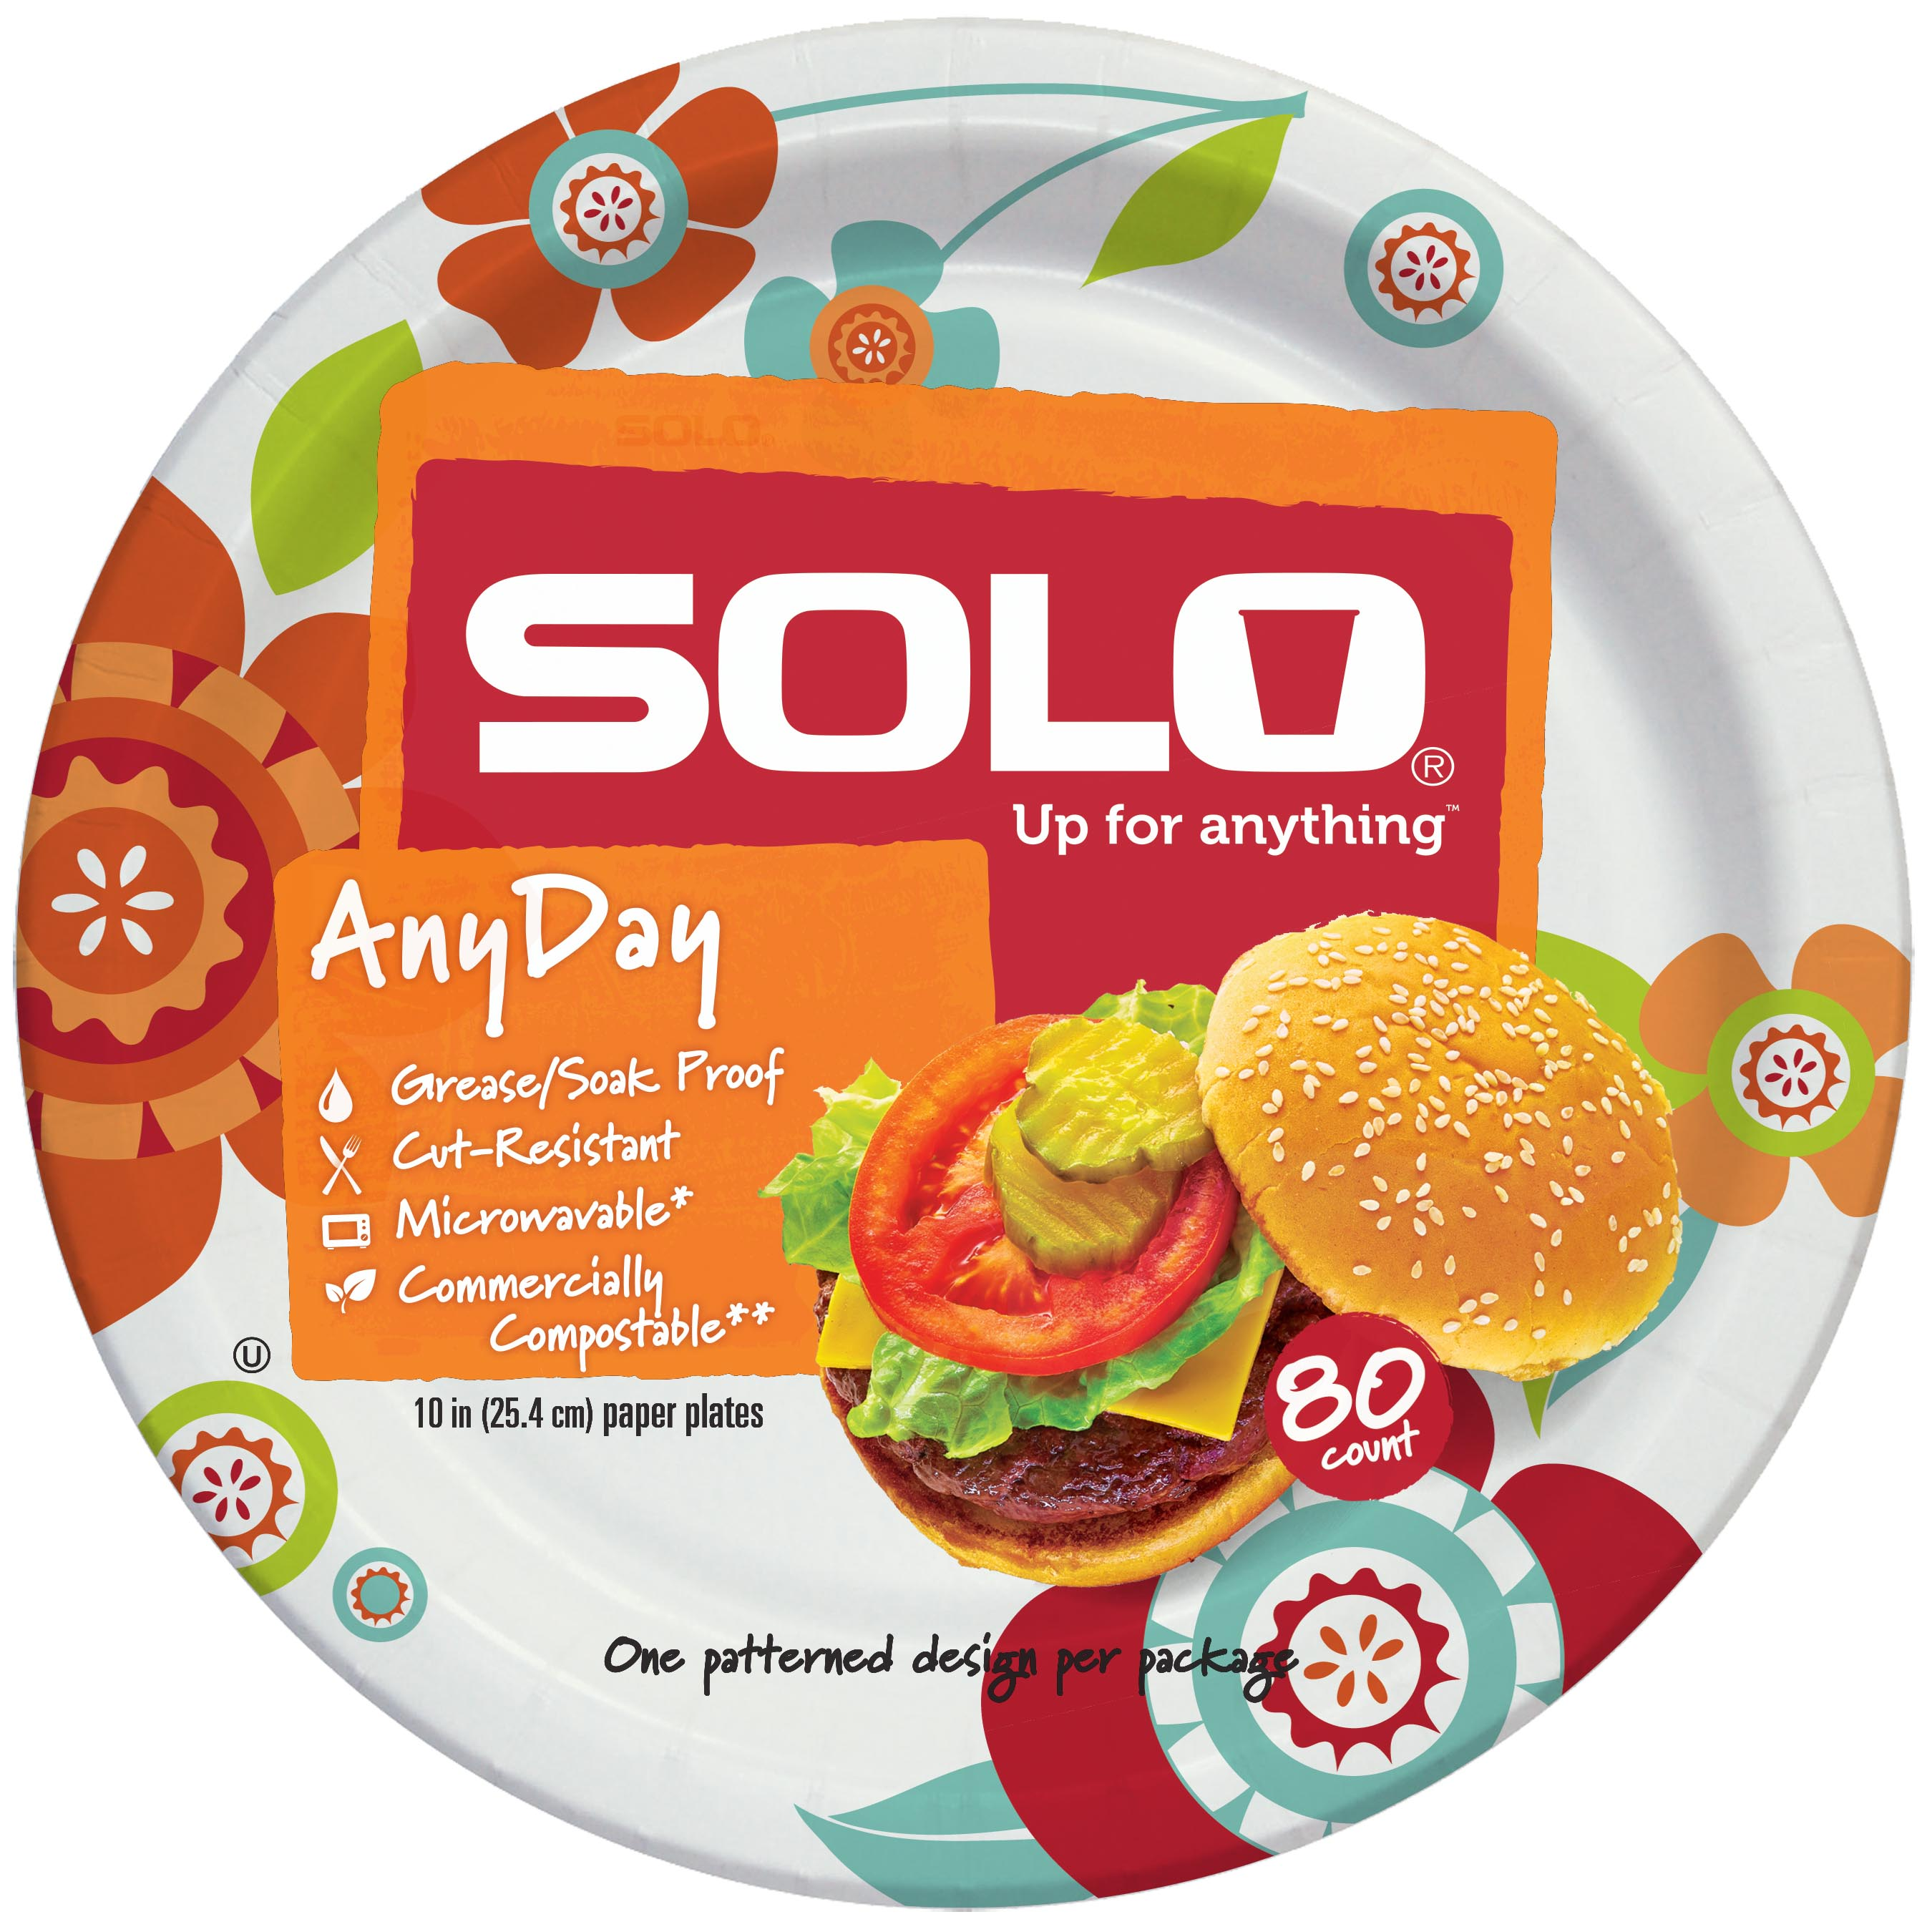 "Solo Any Day Paper Plates, 10"", 80 Count"